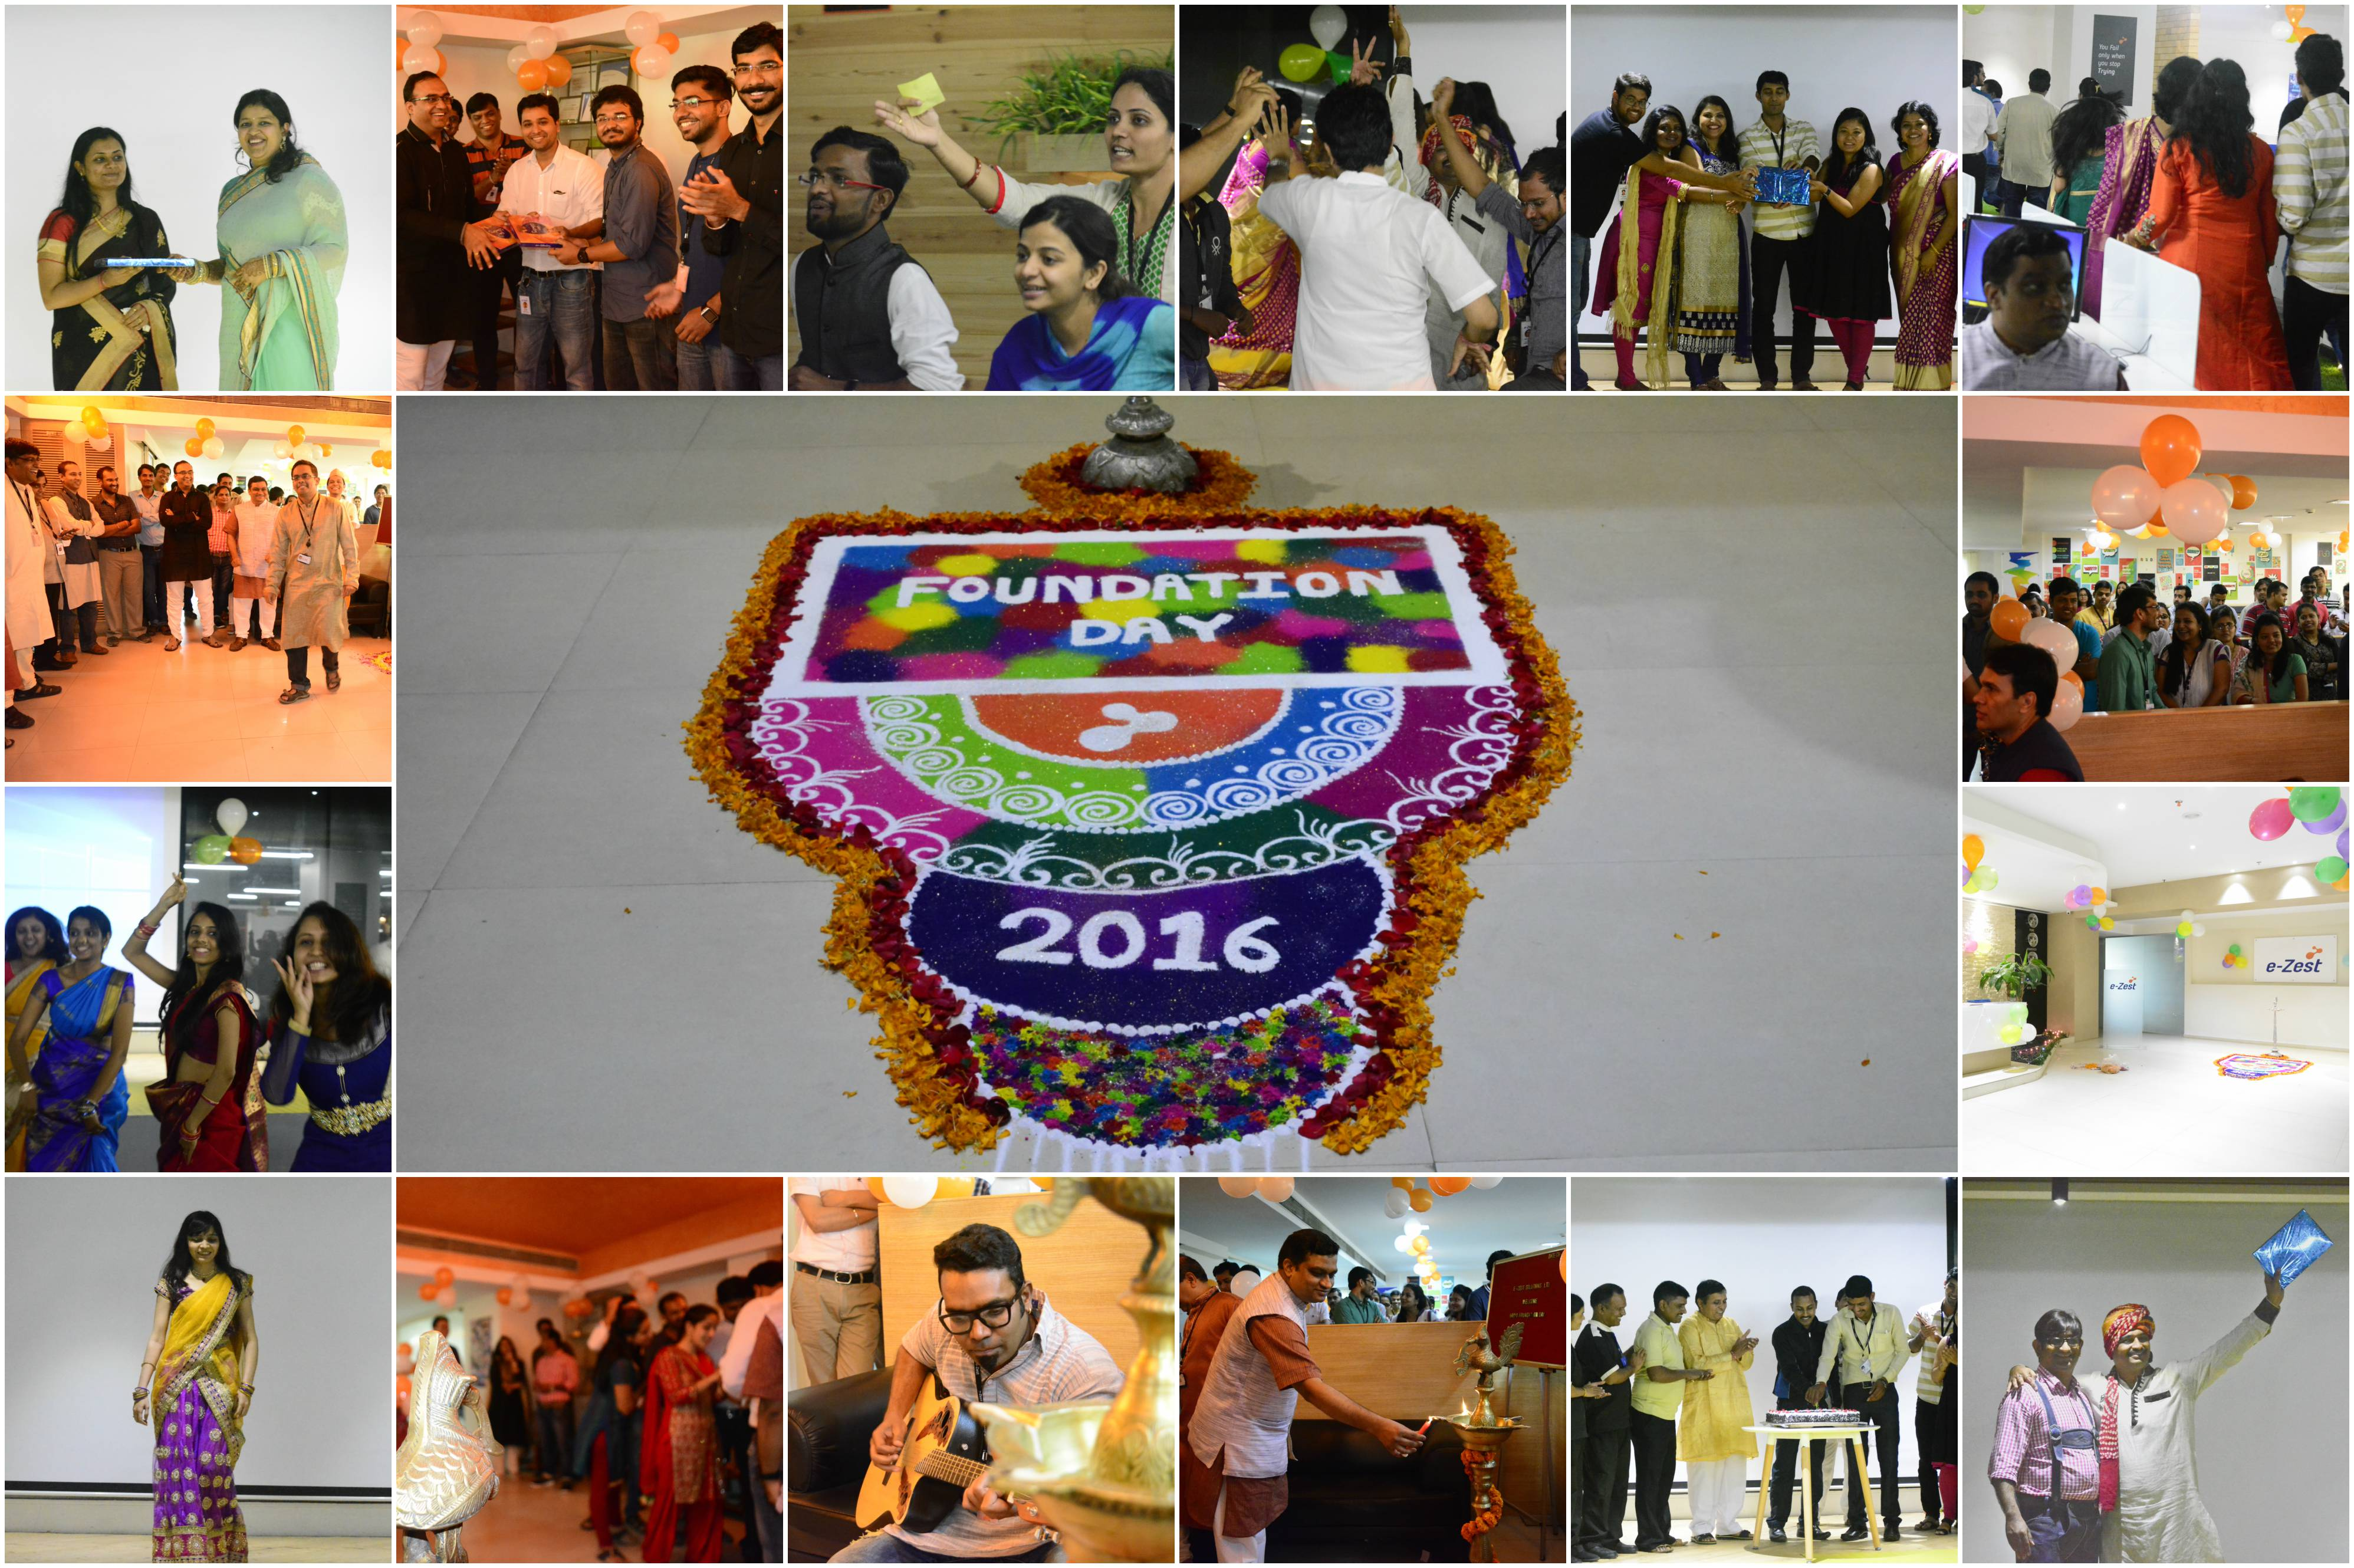 Foundation_Day_2016.jpg